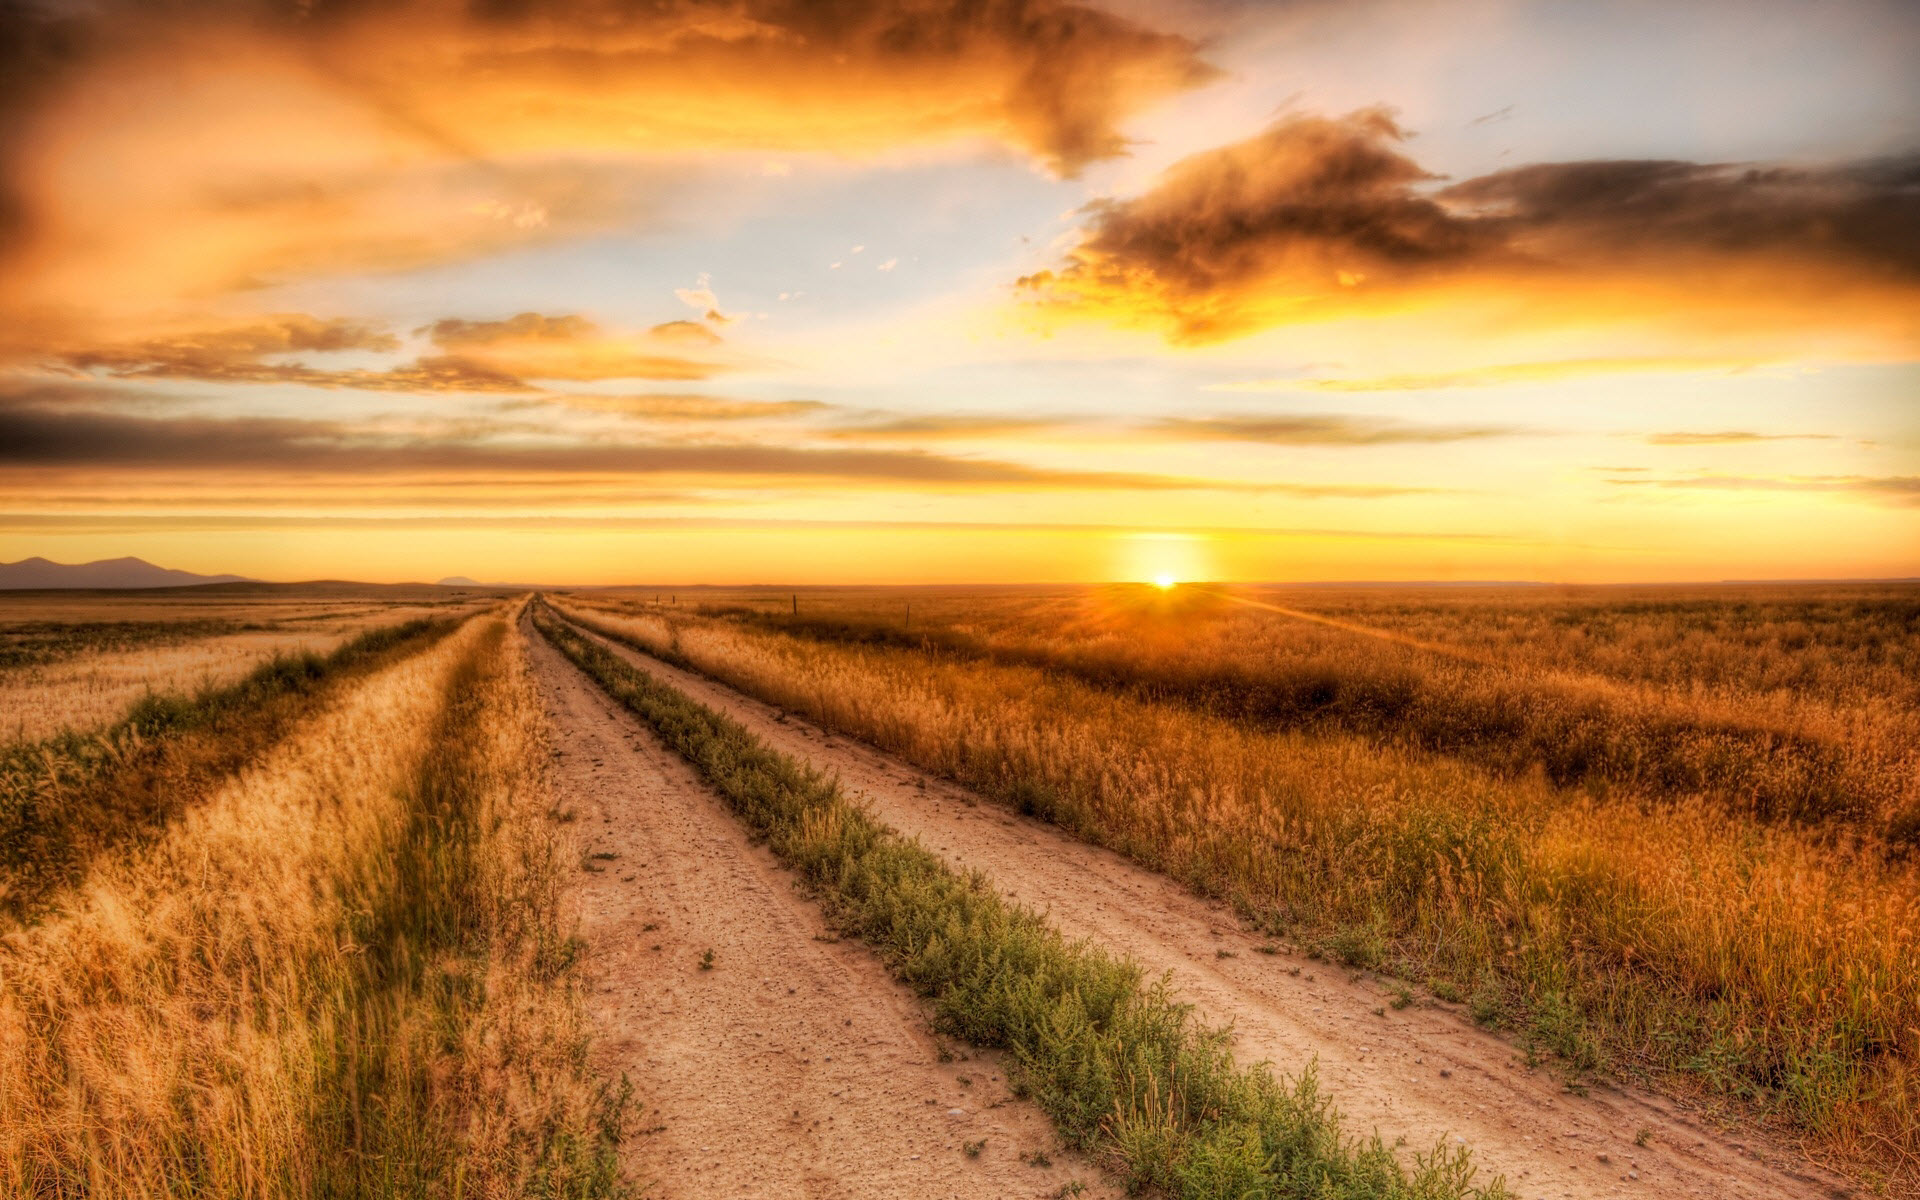 Dirt Road Sunset Wallpaper Background For Pc